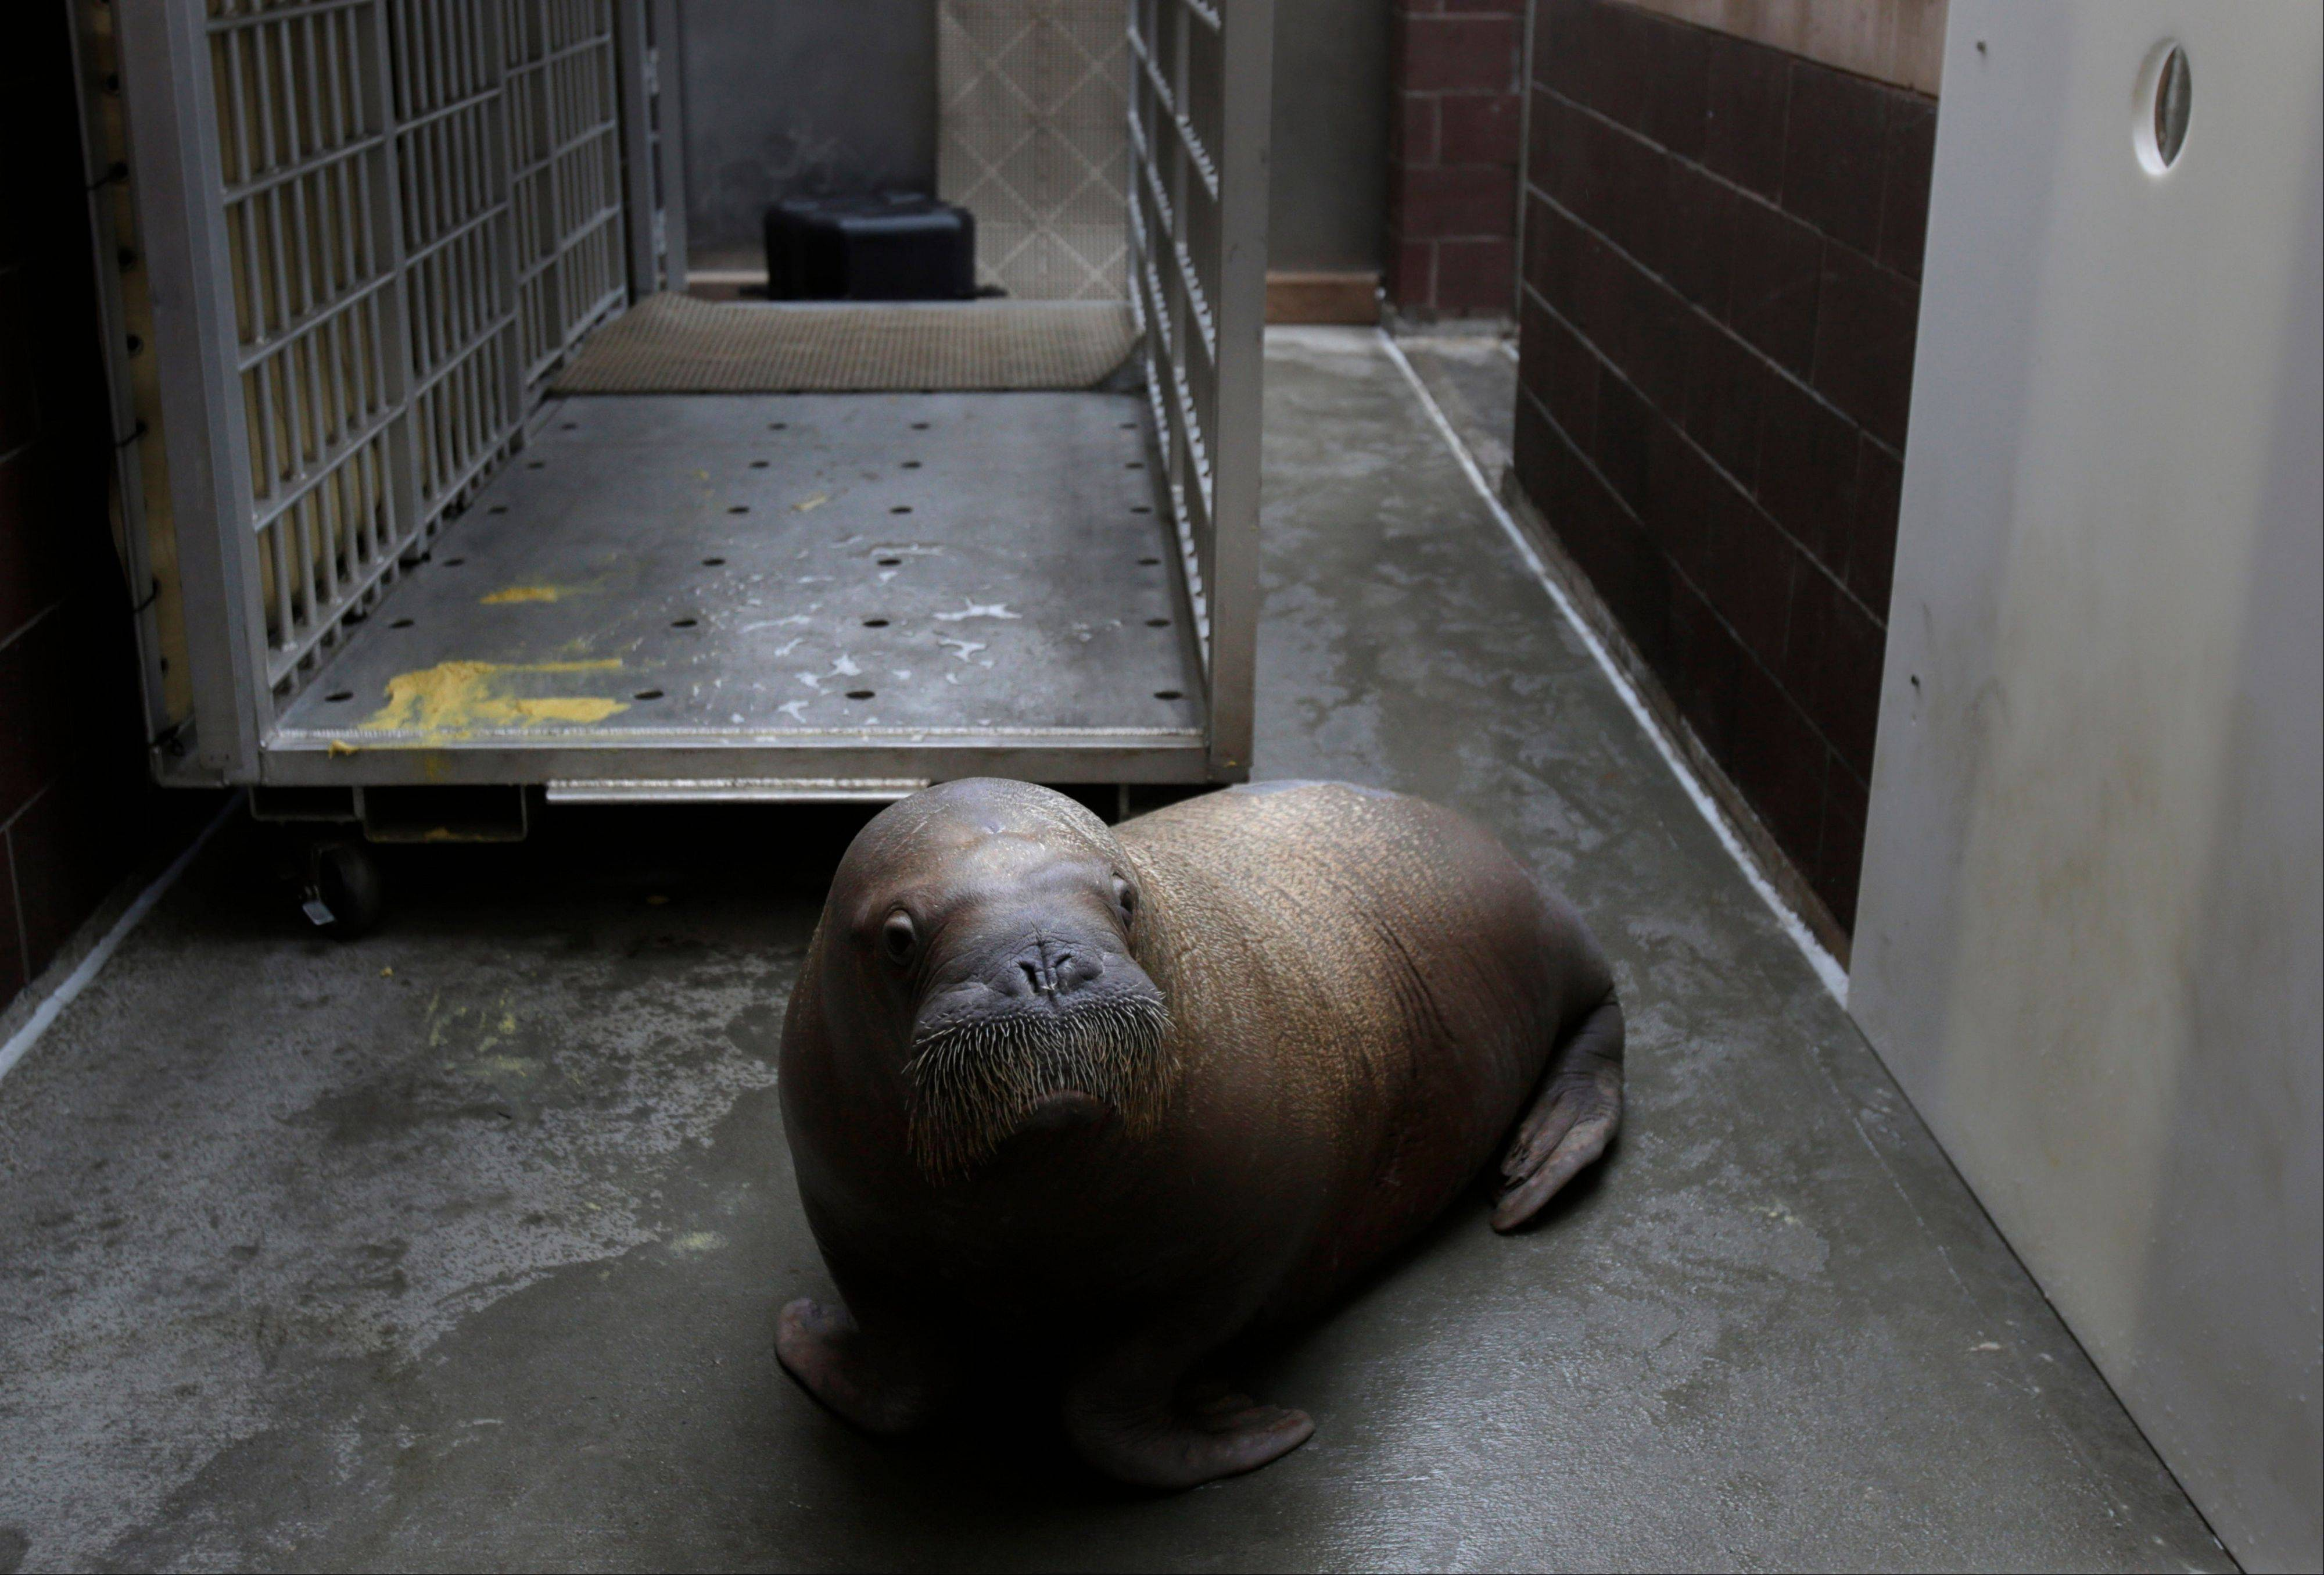 Mitik, a baby walrus survived the flooding of his enclosure during Superstorm Sandy, at the Wildlife Conservation Society's New York Aquarium.